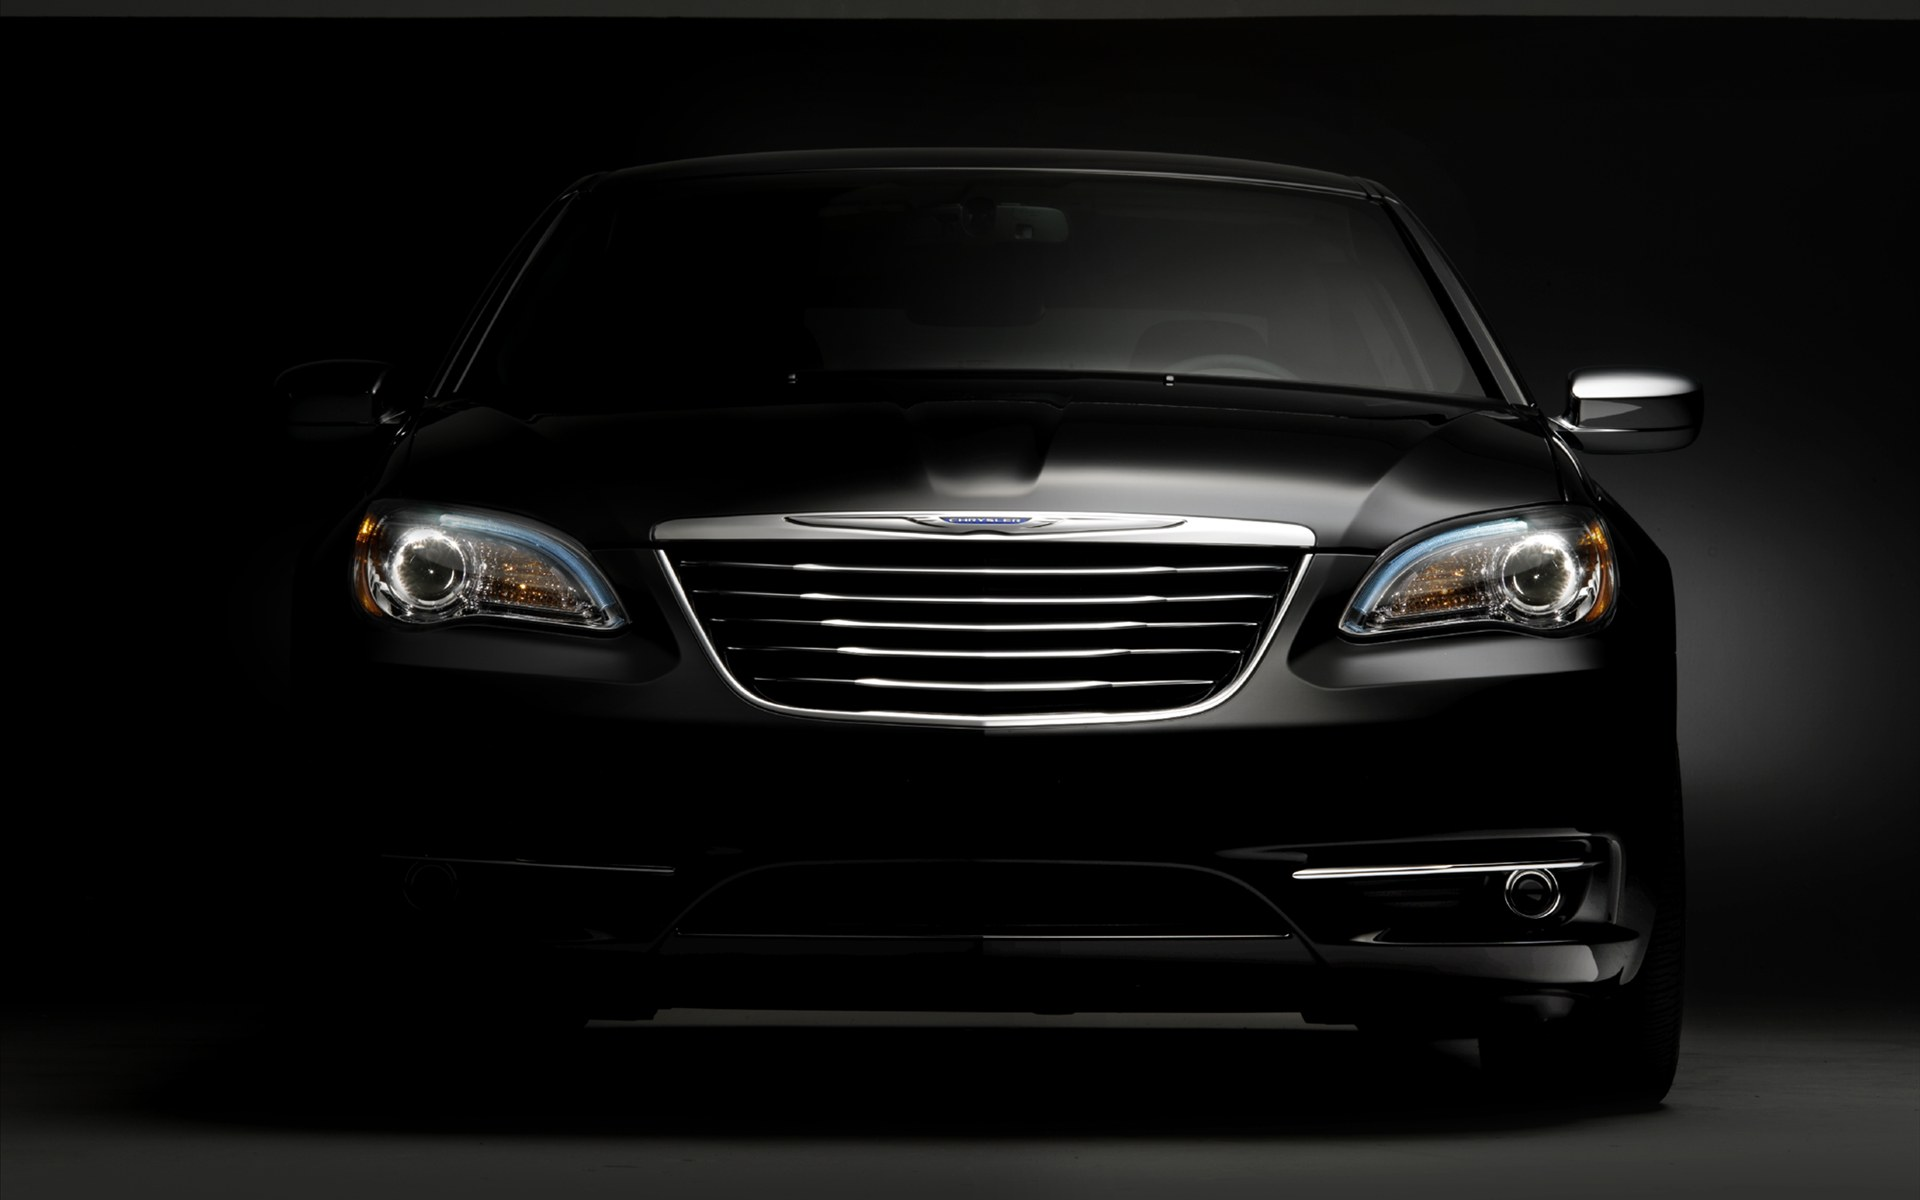 Chrysler 200 2011 Wallpaper 6 Sense The Car 1920x1200